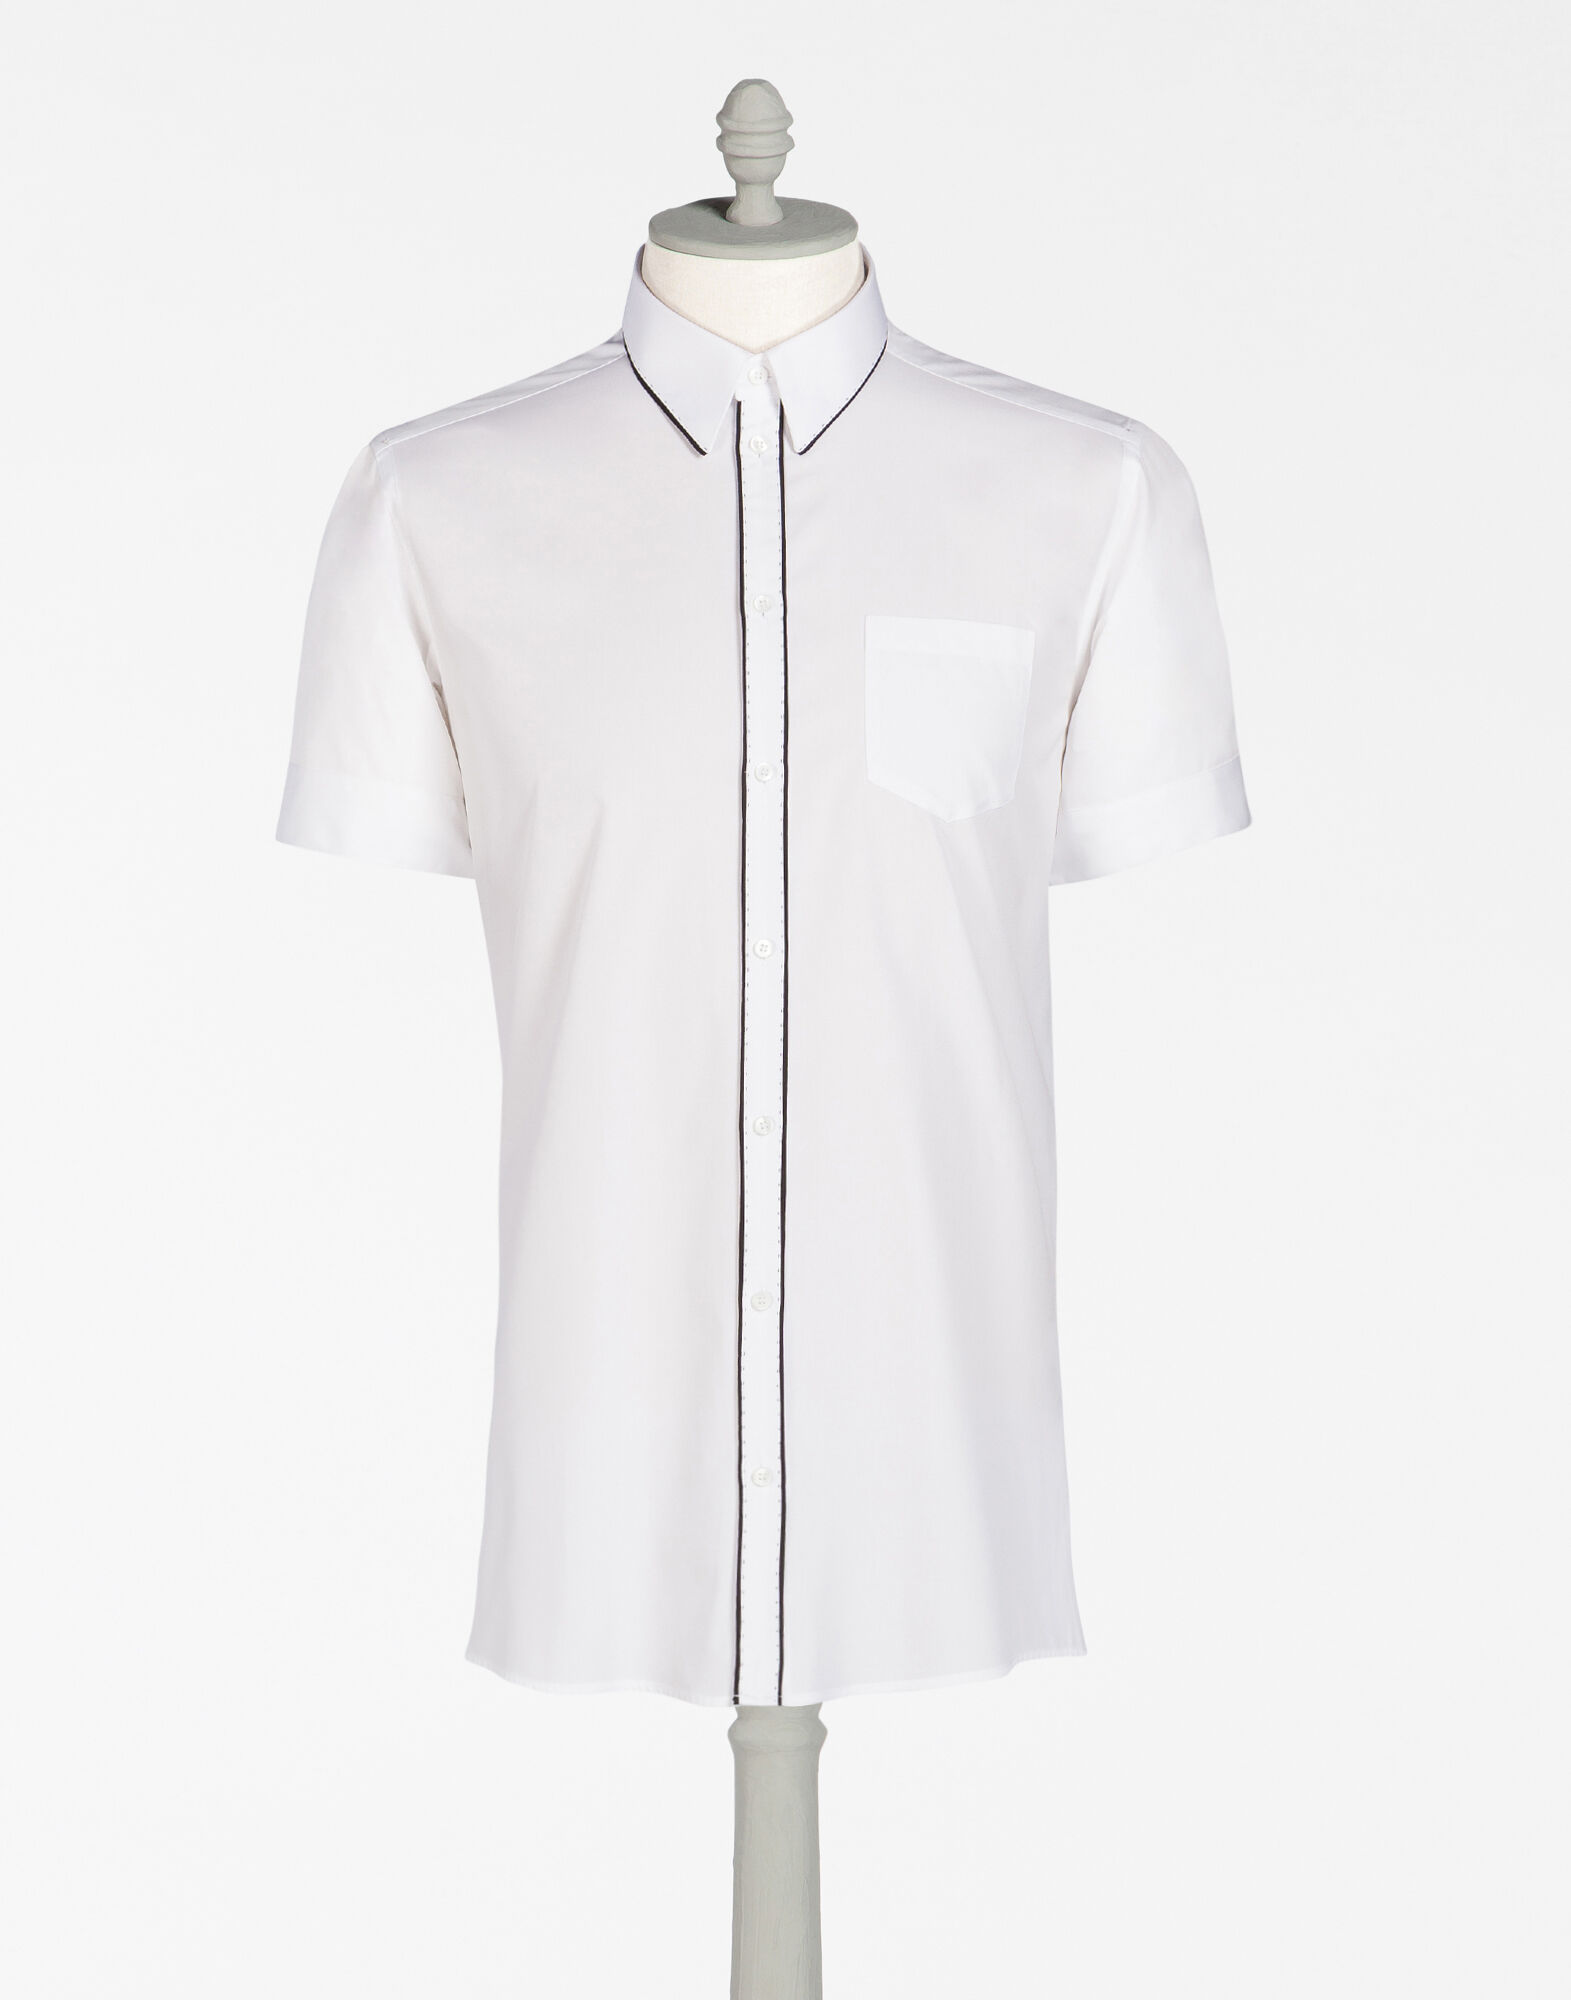 SHORT-SLEEVED POPLIN COTTON JERSEY